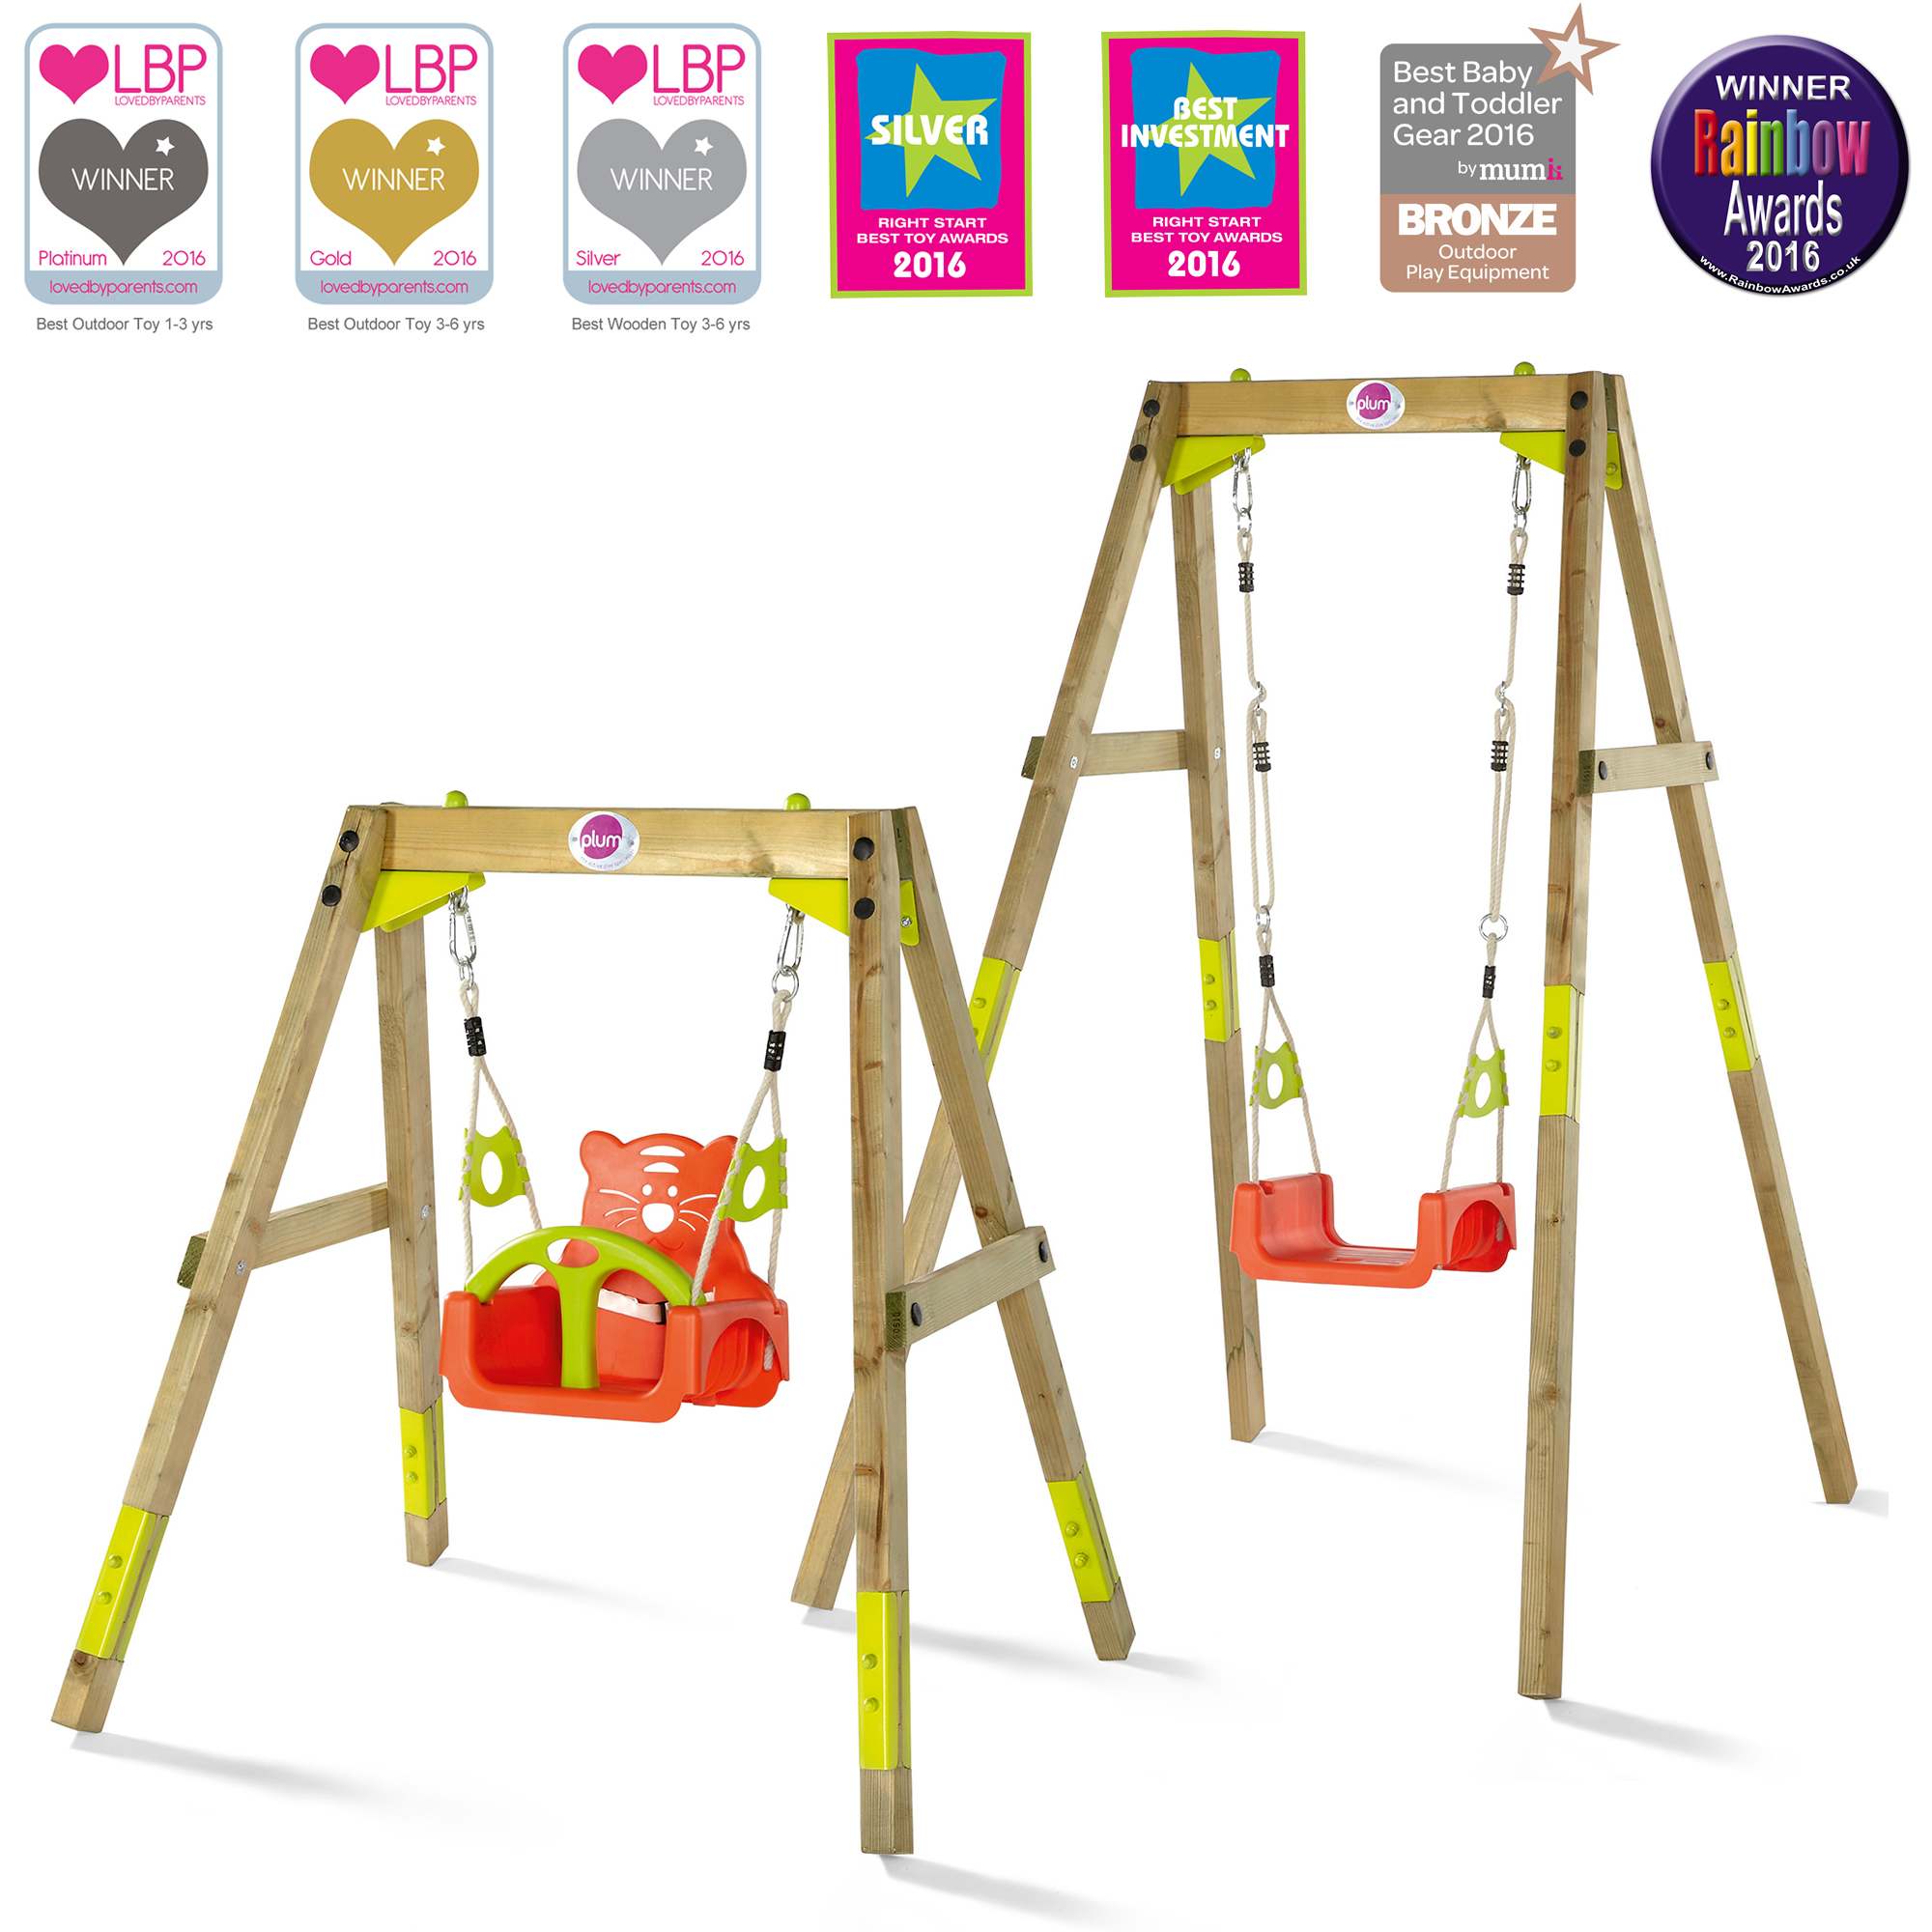 The Plum Must-have Award Winning Swing Set!